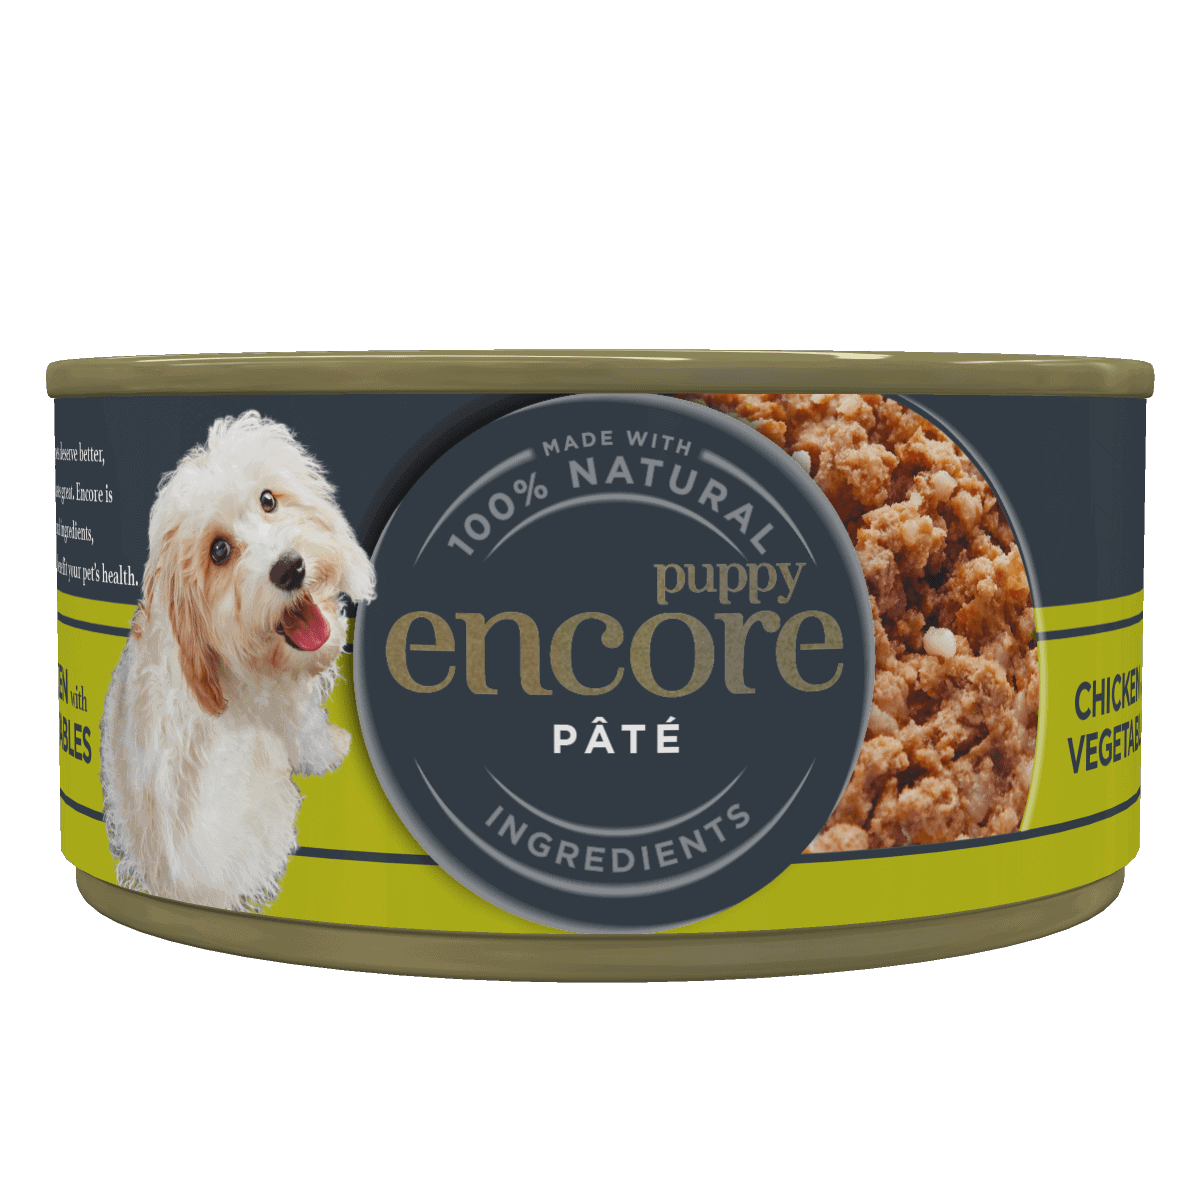 Close up of an Encore puppy pate tin